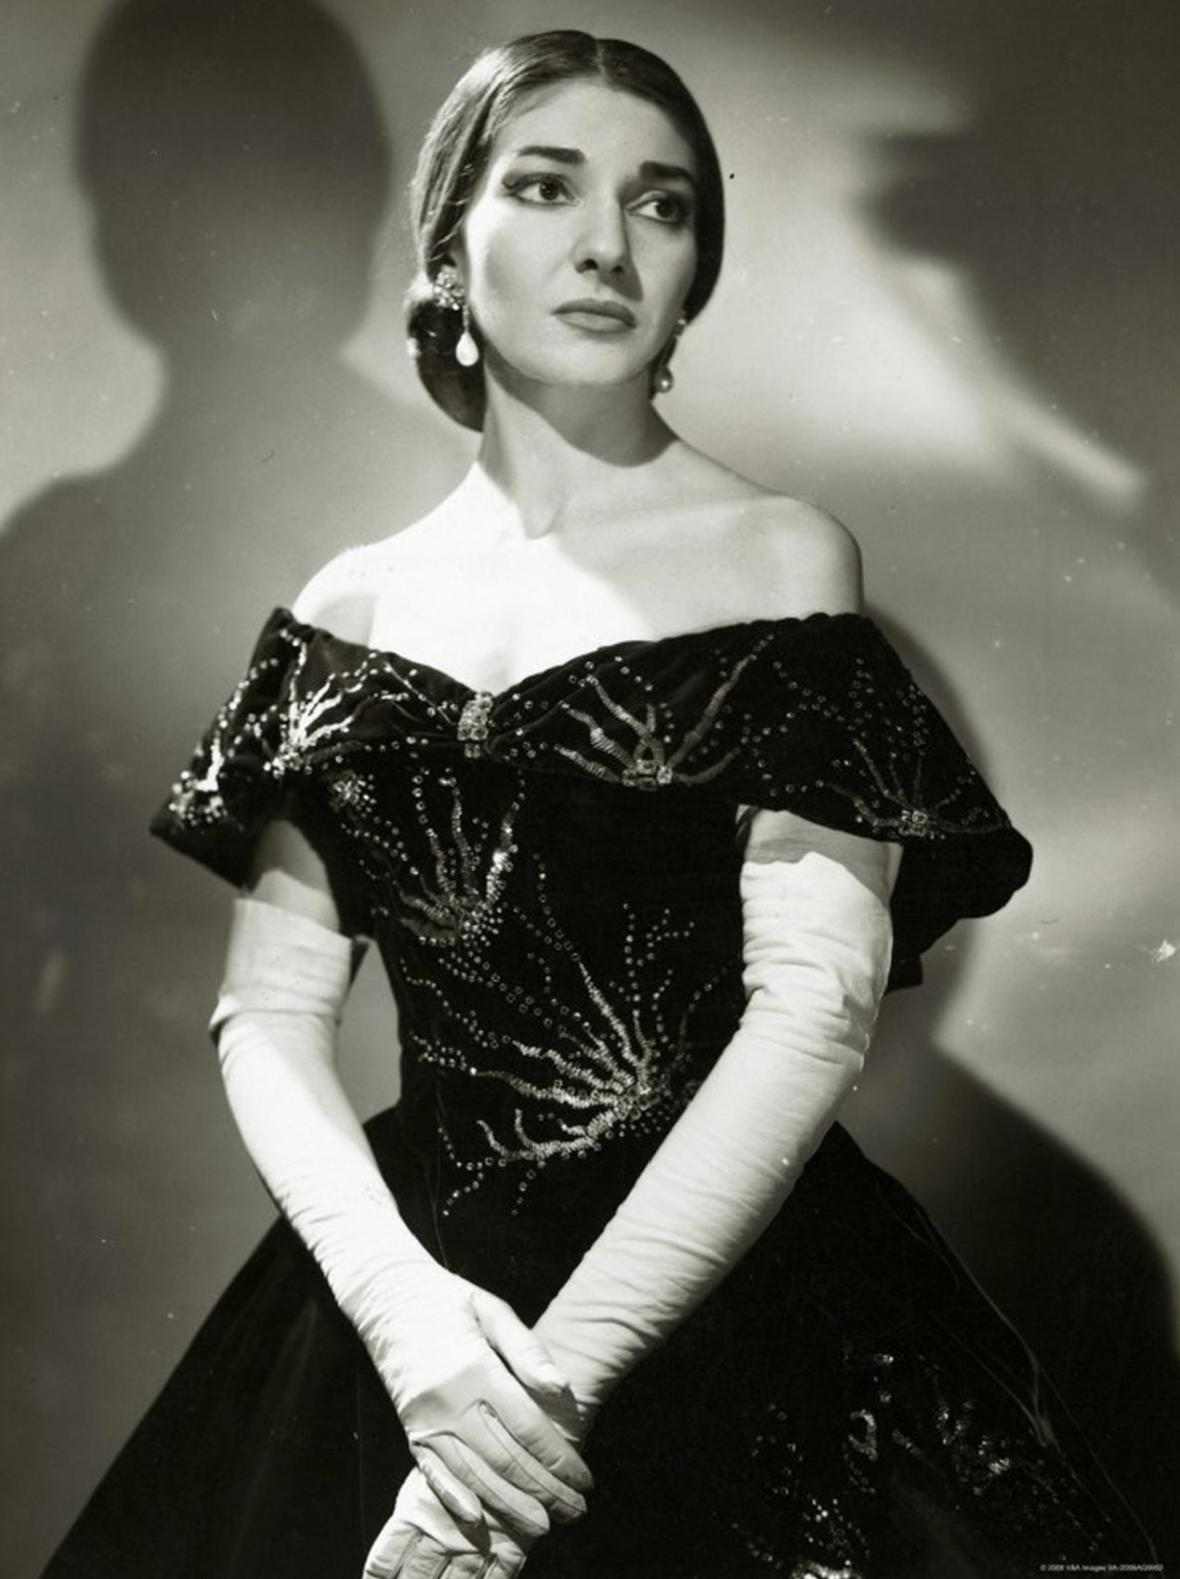 https://commons.wikimedia.org/wiki/File:Maria_Callas_(La_Traviata)_2.JPG